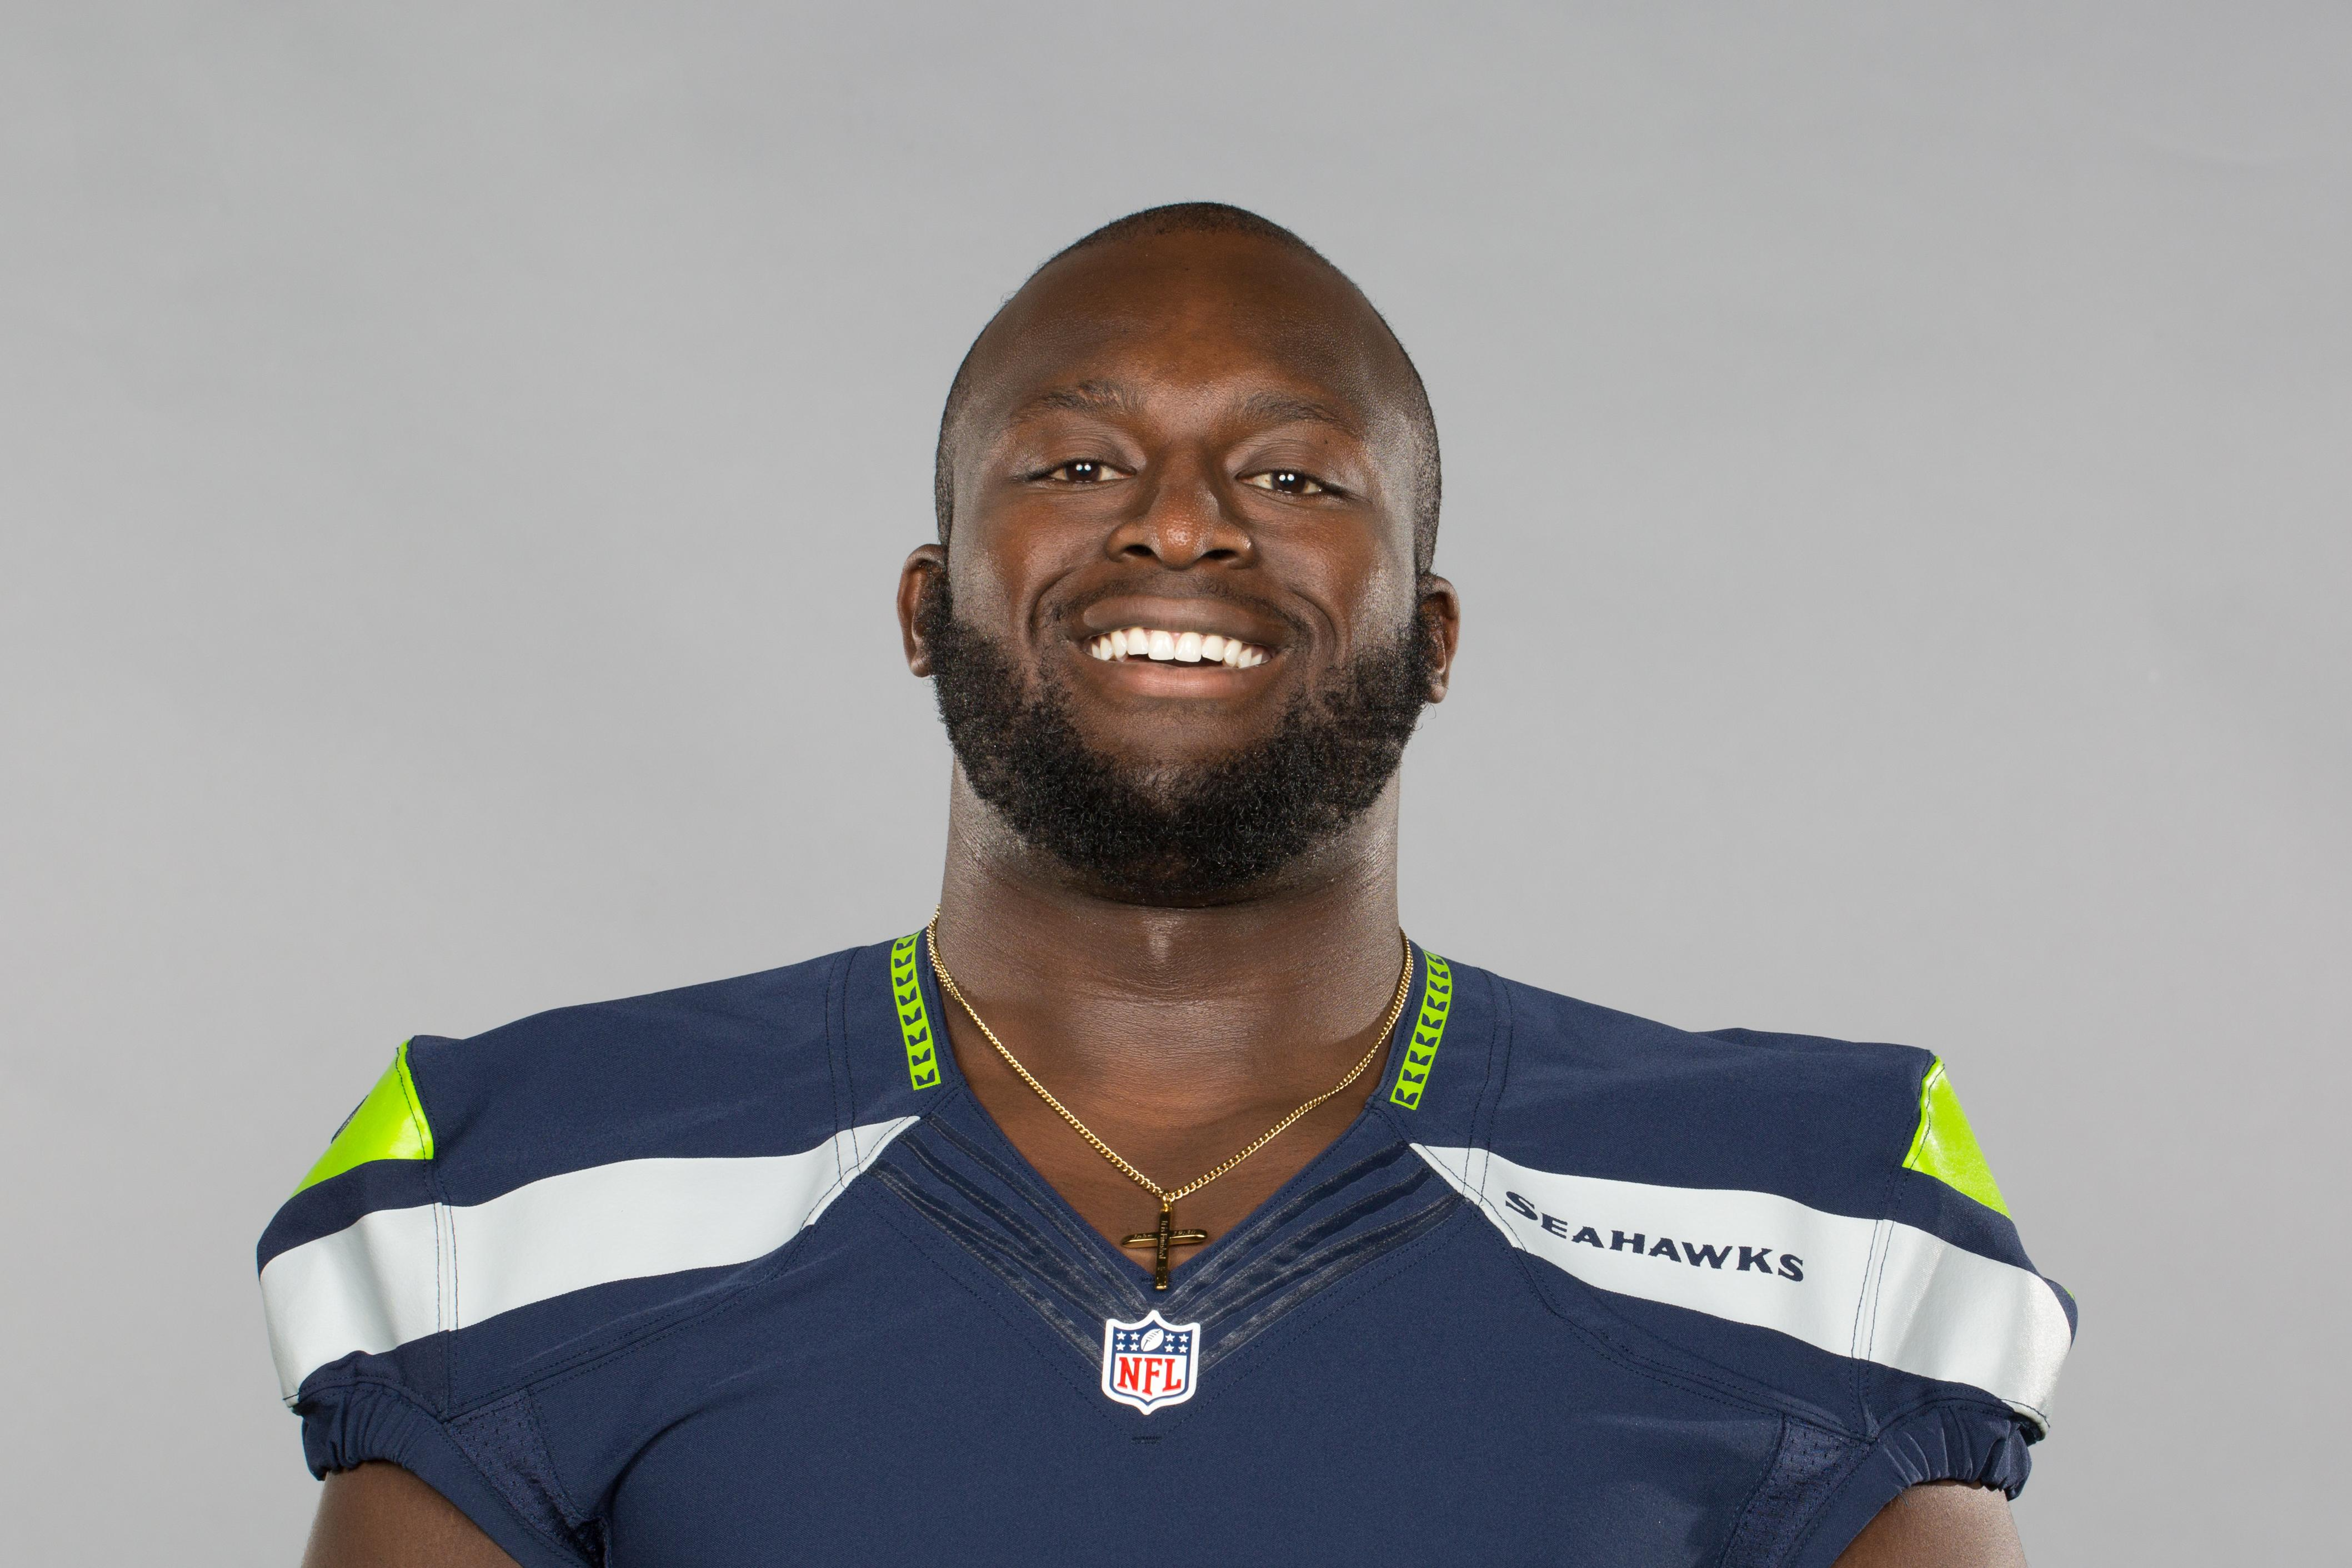 detailed look 87a8a 0929d Seahawks OL Rees Odhiambo hospitalized